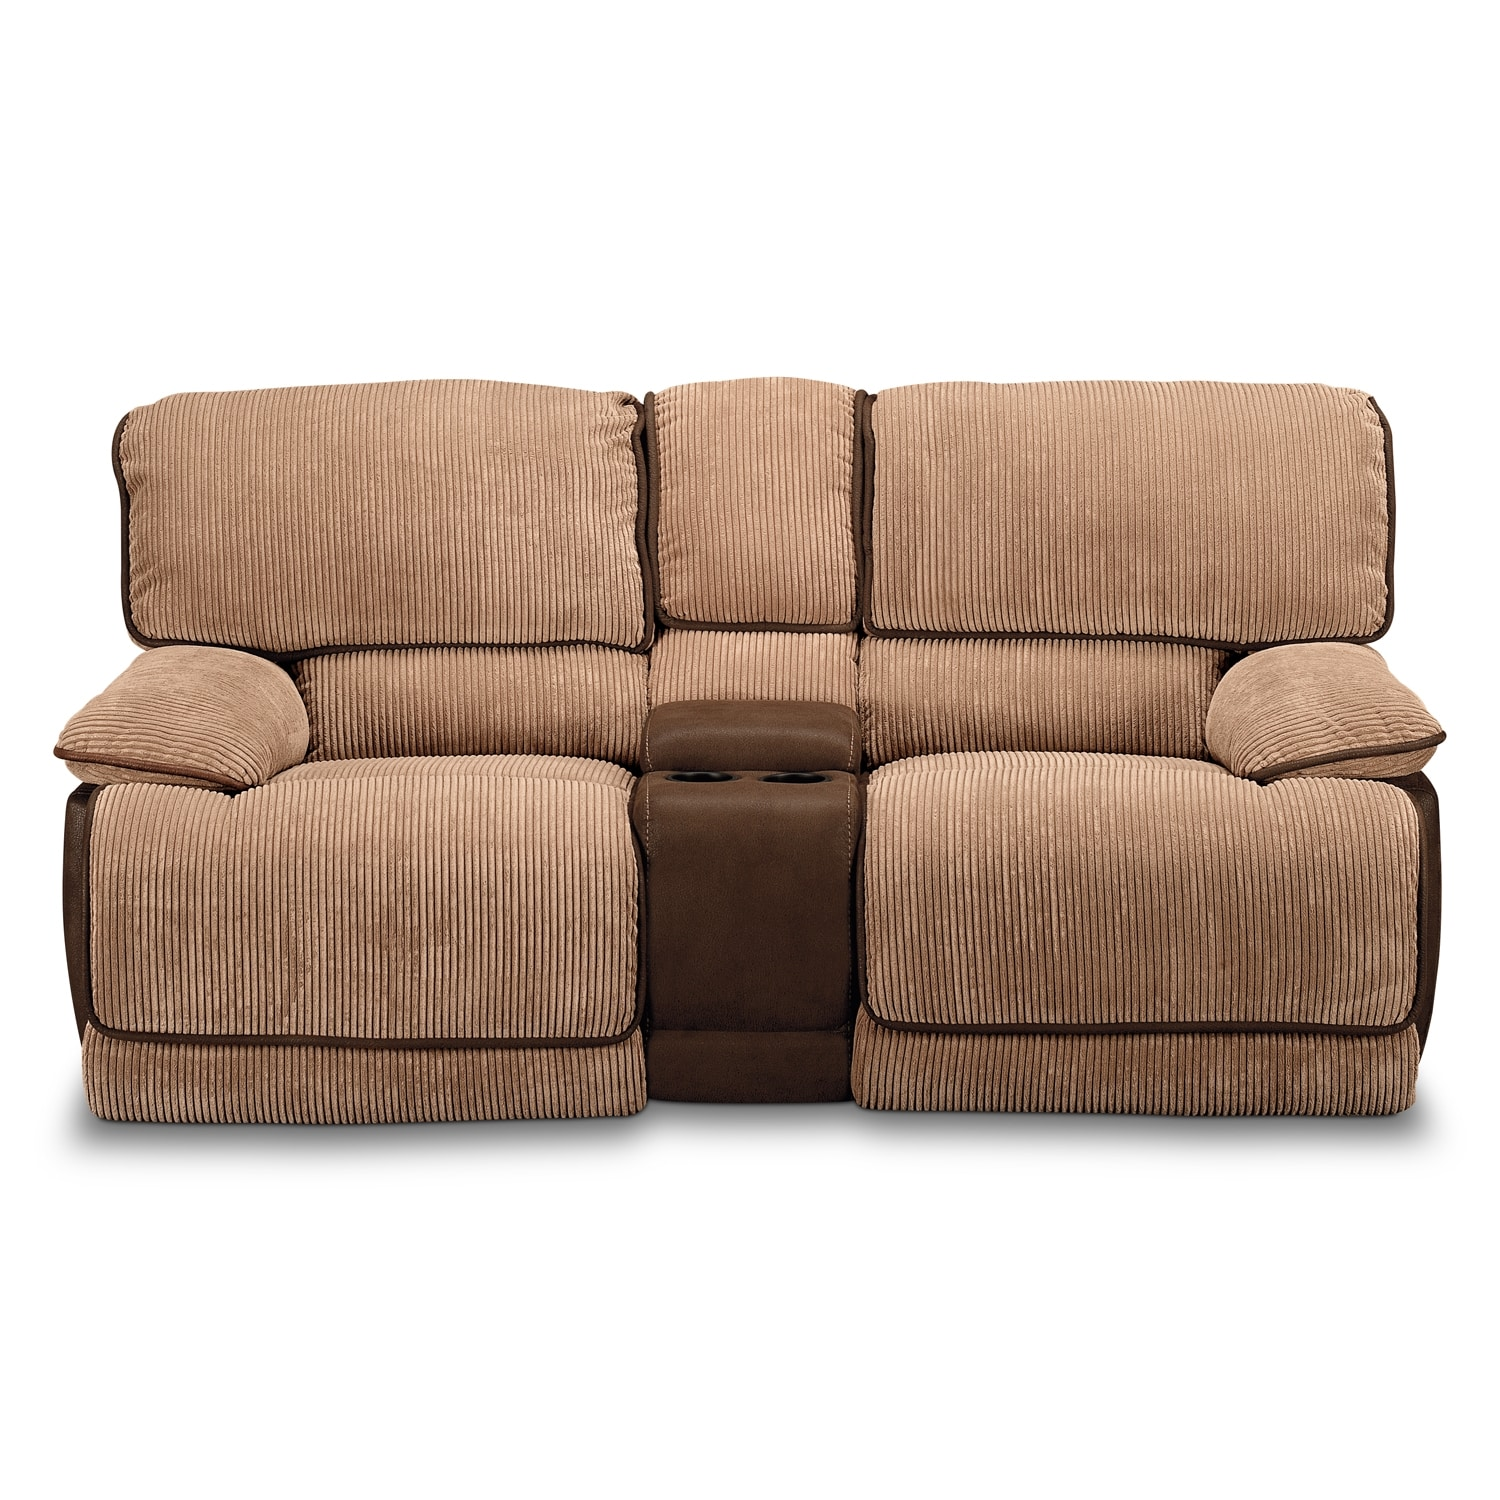 Laguna Gliding Reclining Loveseat Camel Value City Furniture